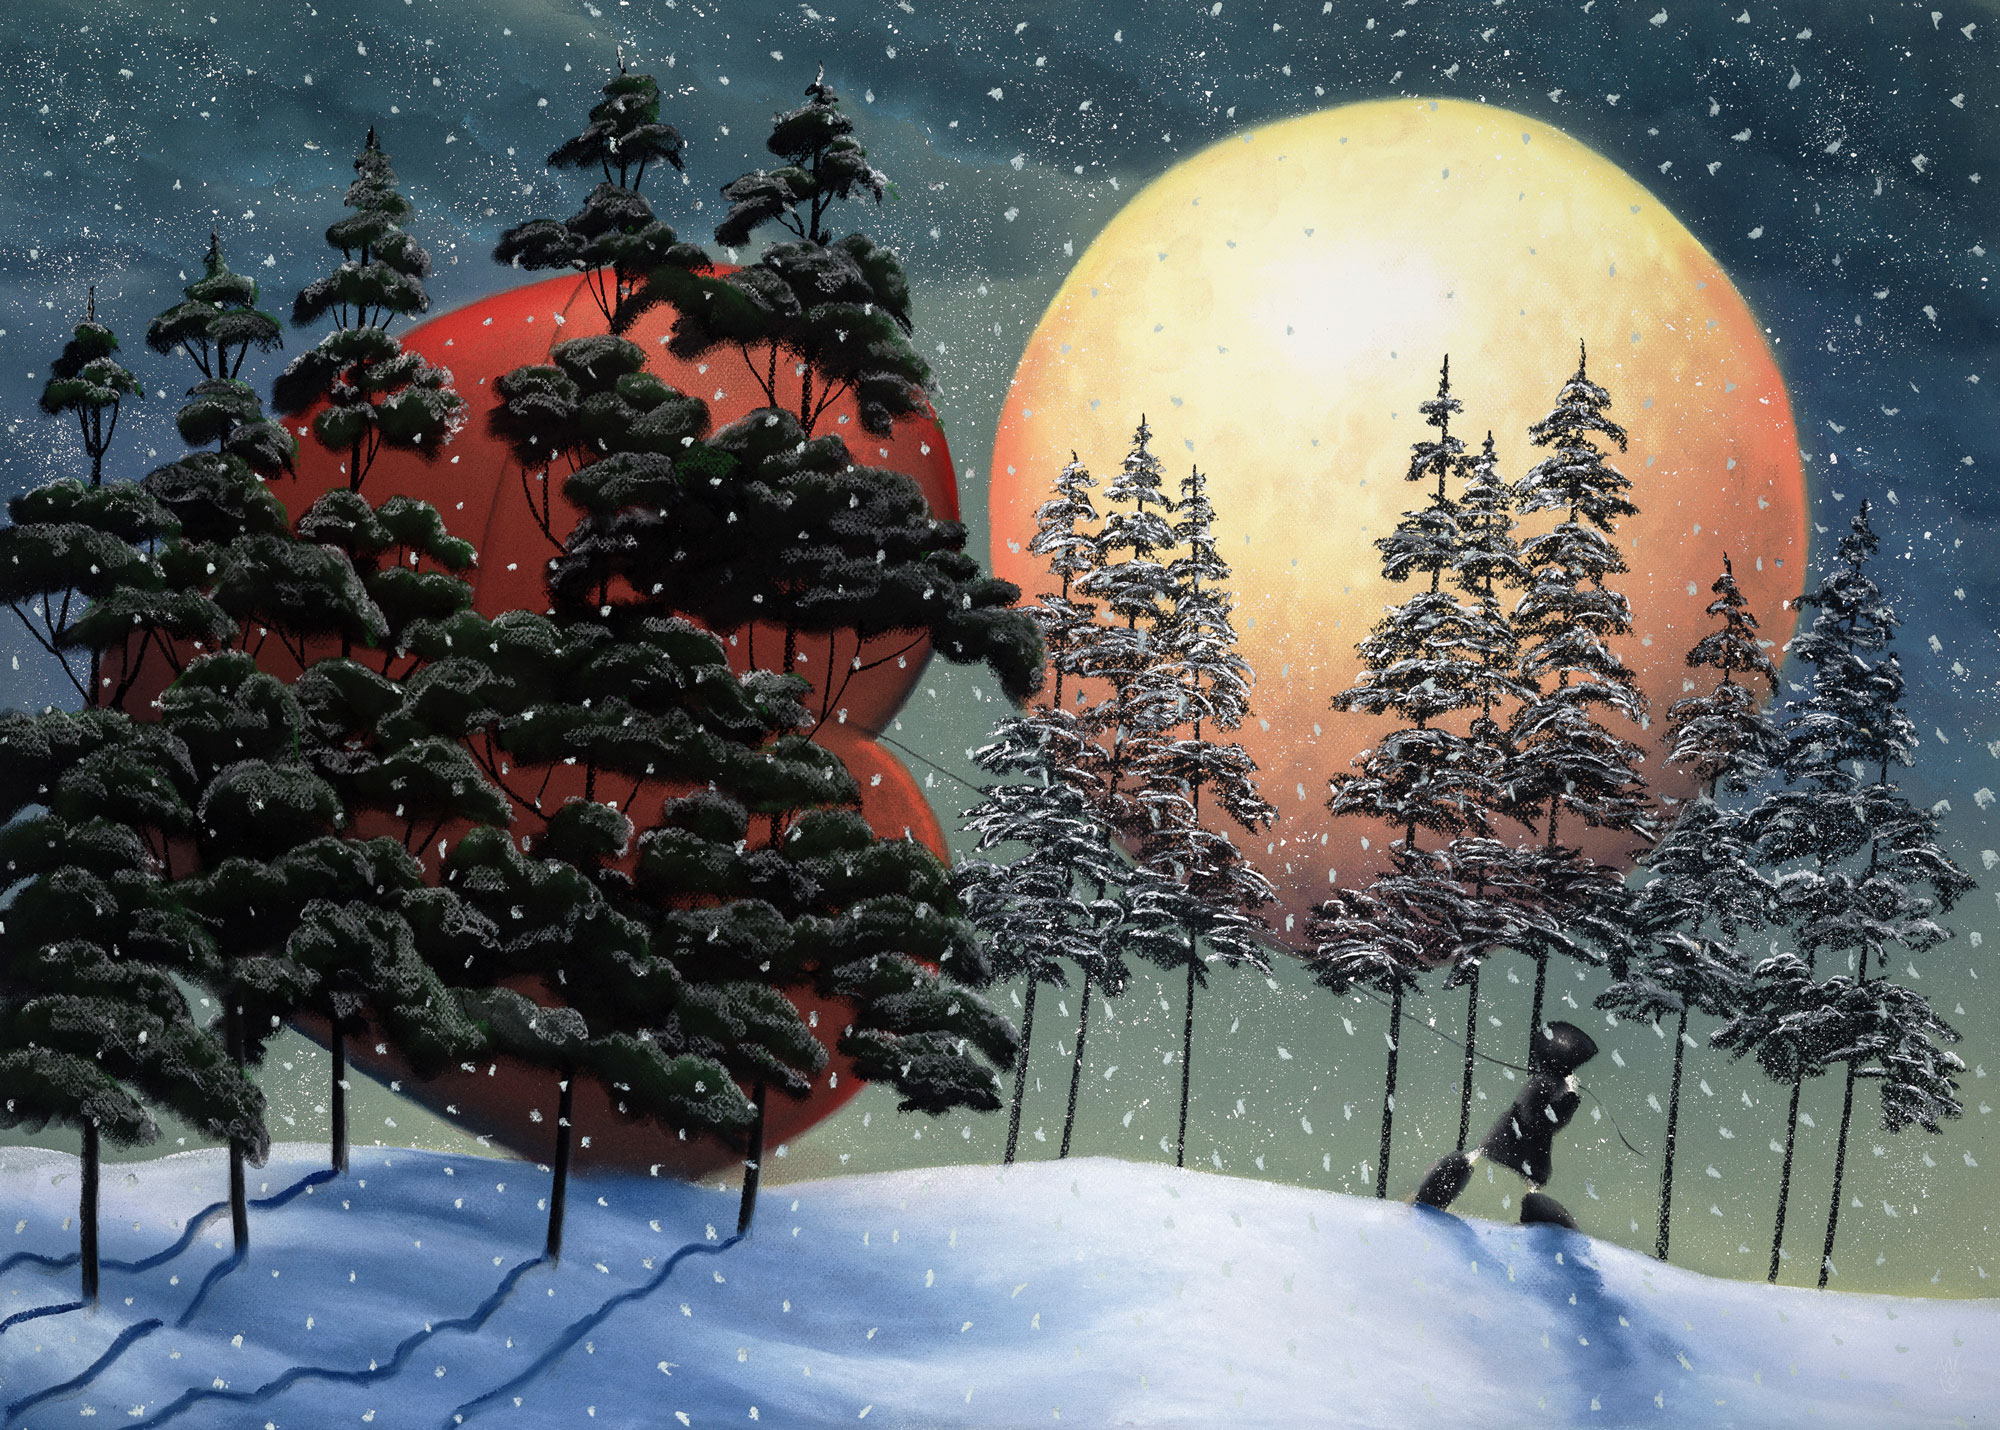 Winter moon of Love by Mackenzie Thorpe